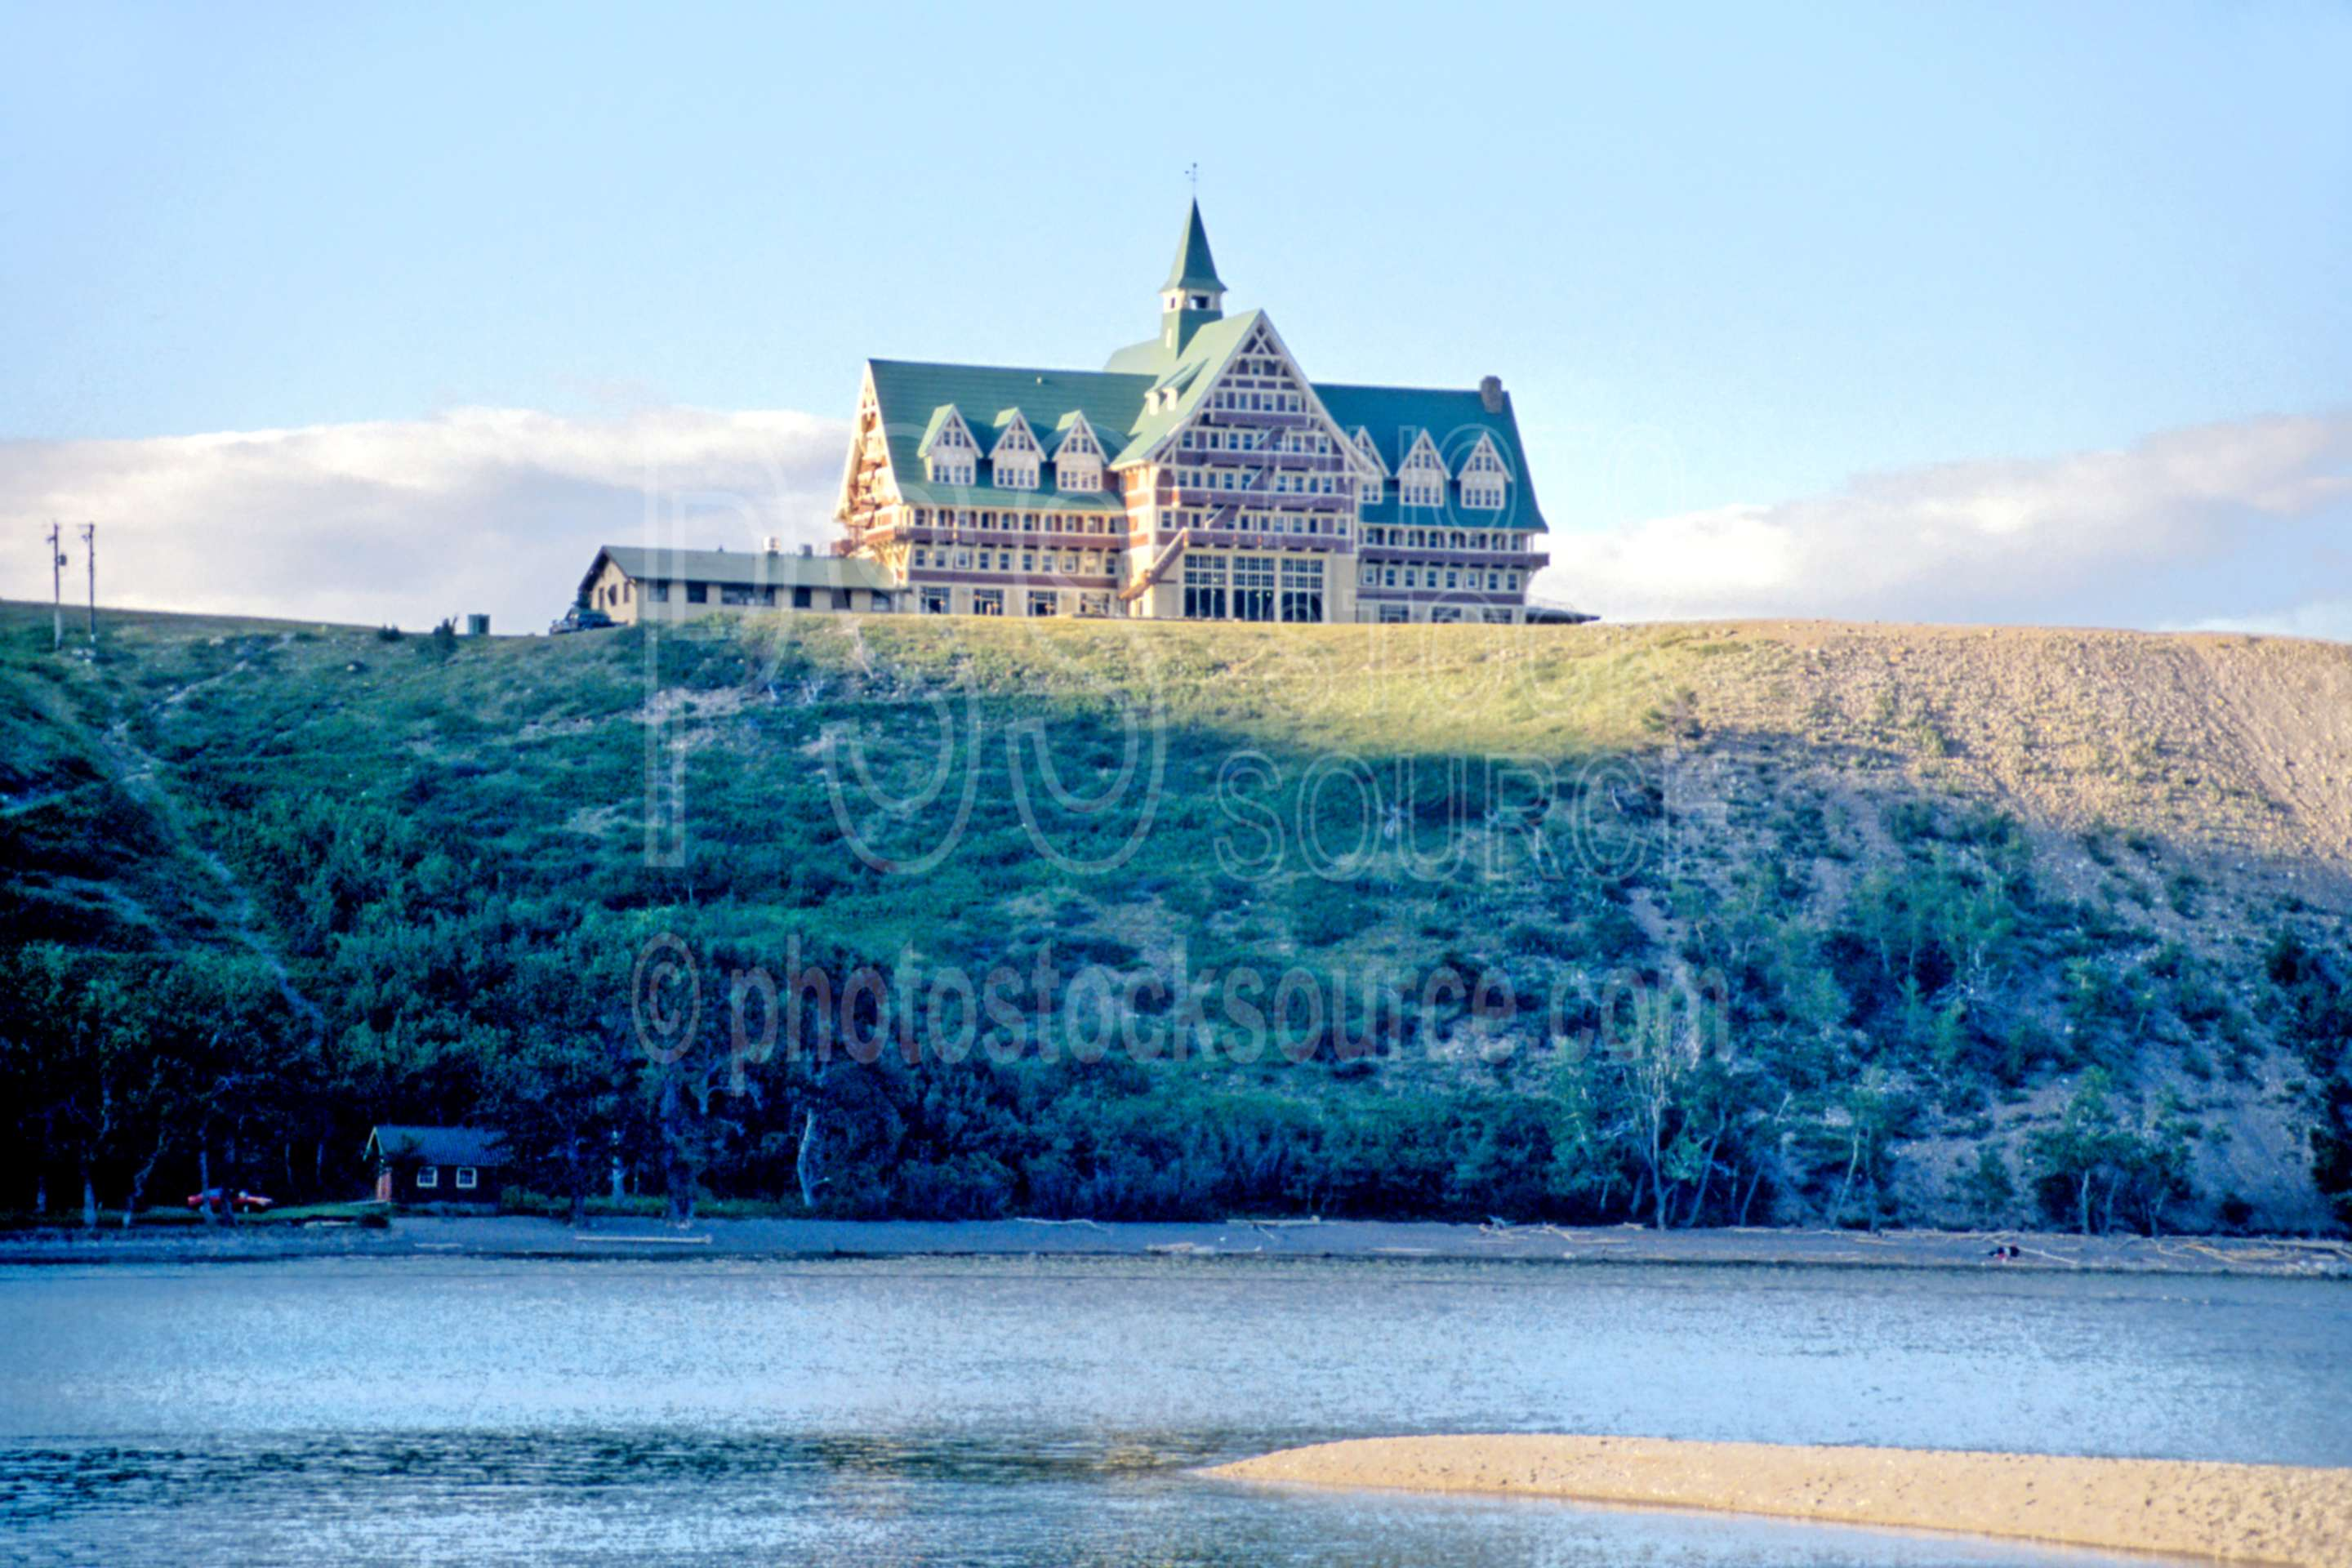 Prince of Wales Hotel,waterton lakes national park,lodge,lakes rivers,nature